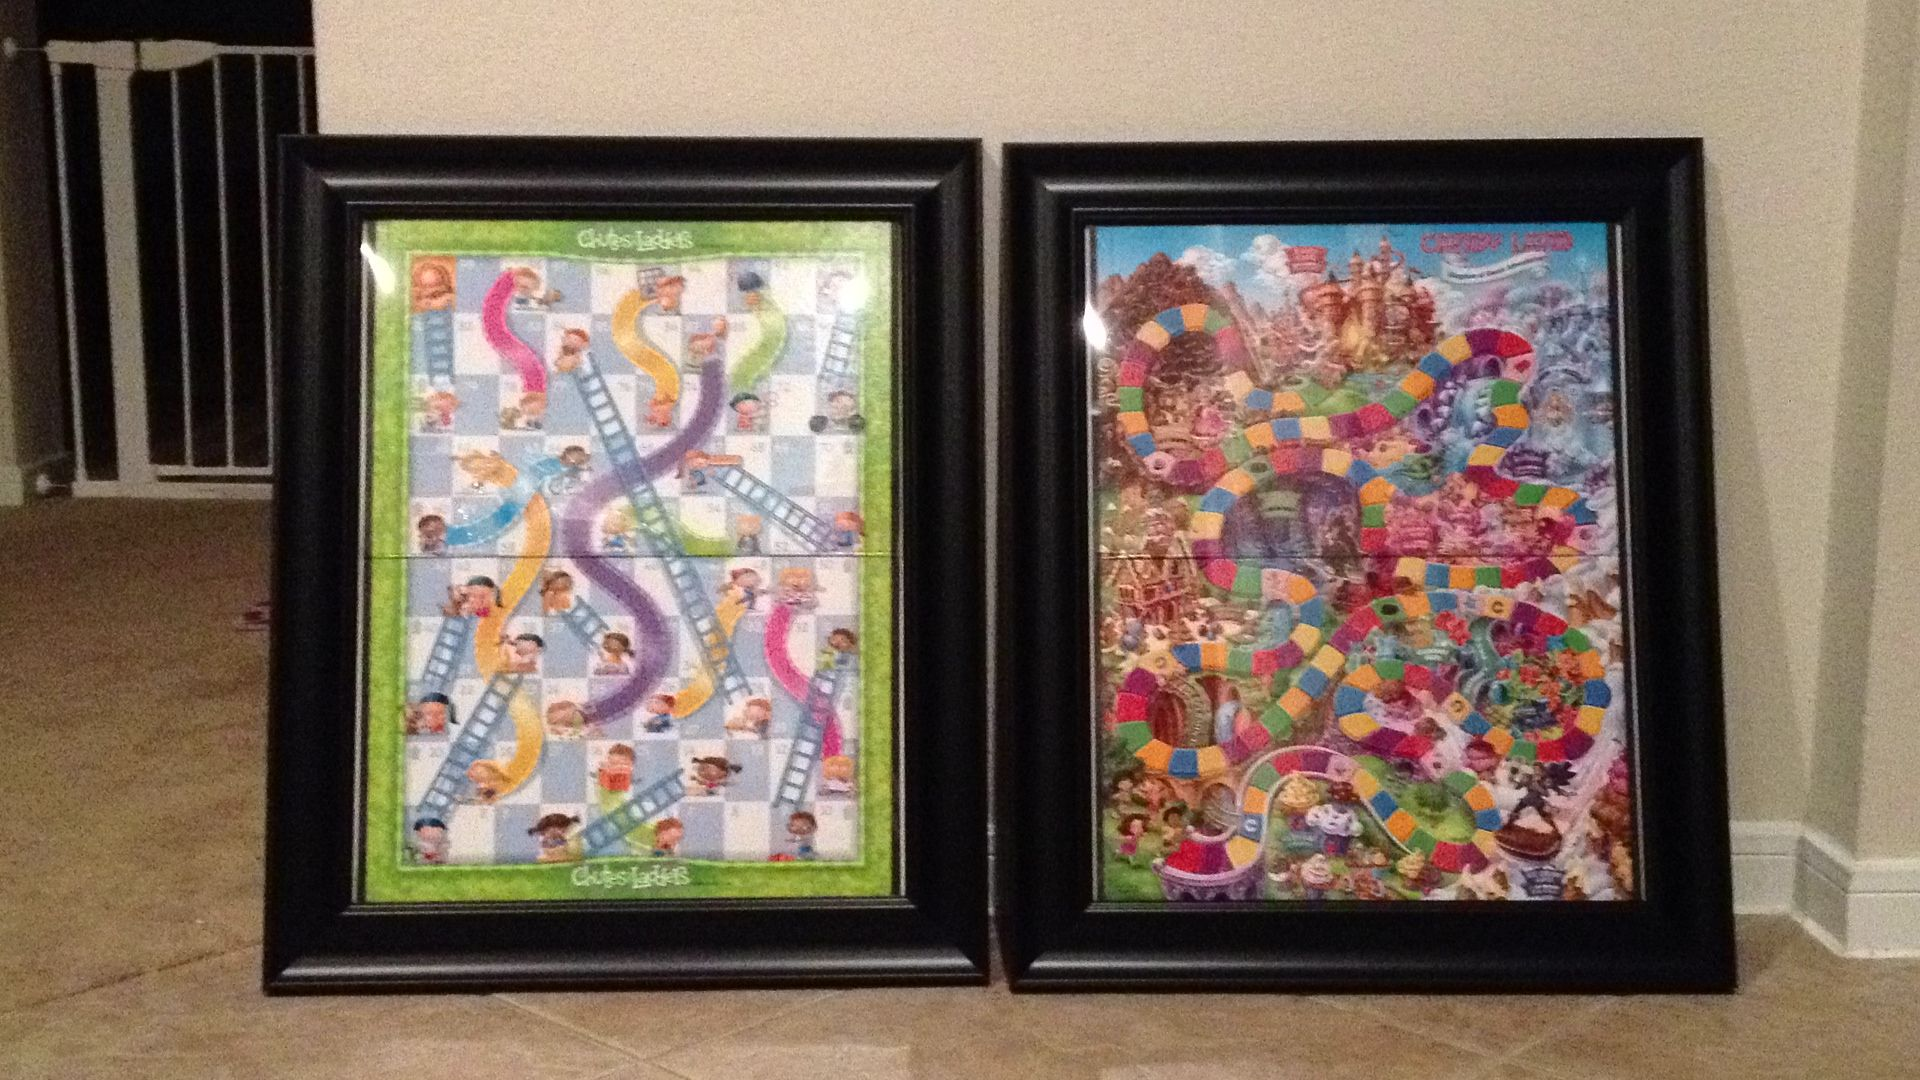 Bought cheap picture frames from walmart and put in chutes bought cheap picture frames from walmart and put in chutes ladders and candy land board jeuxipadfo Gallery